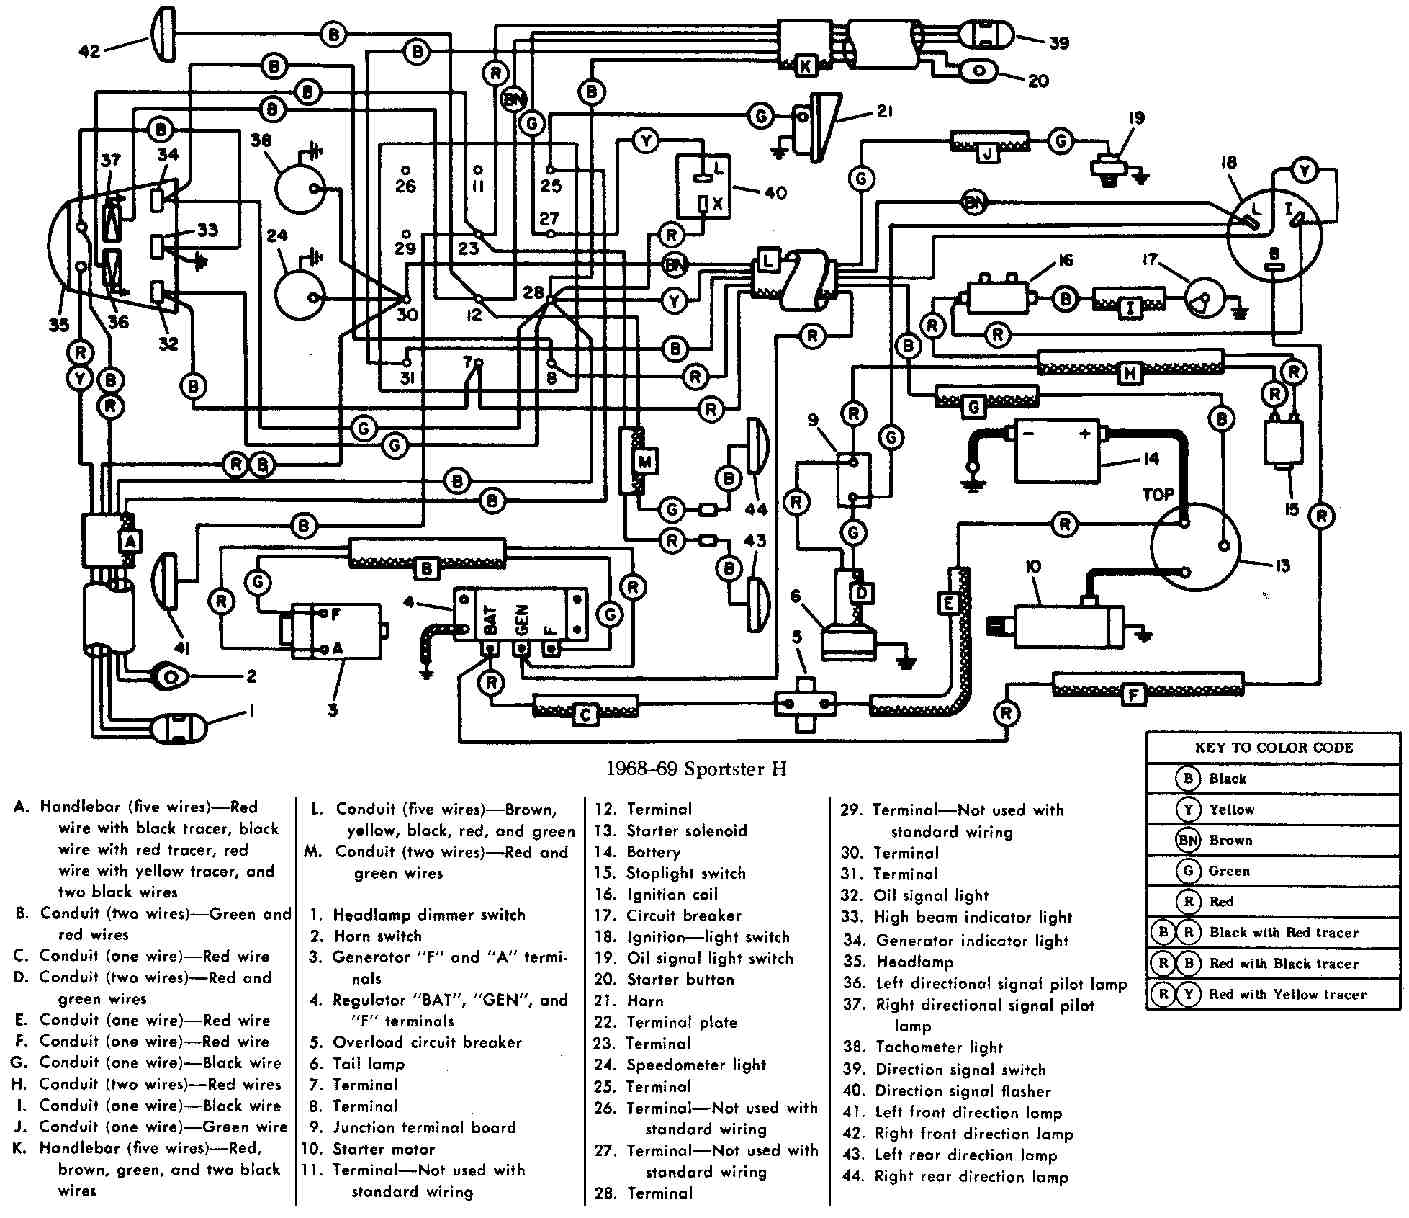 Harley+Davidson+Sportster+1968 1969+Electrical+Wiring+Diagram?resize\\\\\\\\\\\\\\\=665%2C575 1968 chevy truck wiring diagram php free download wiring diagram